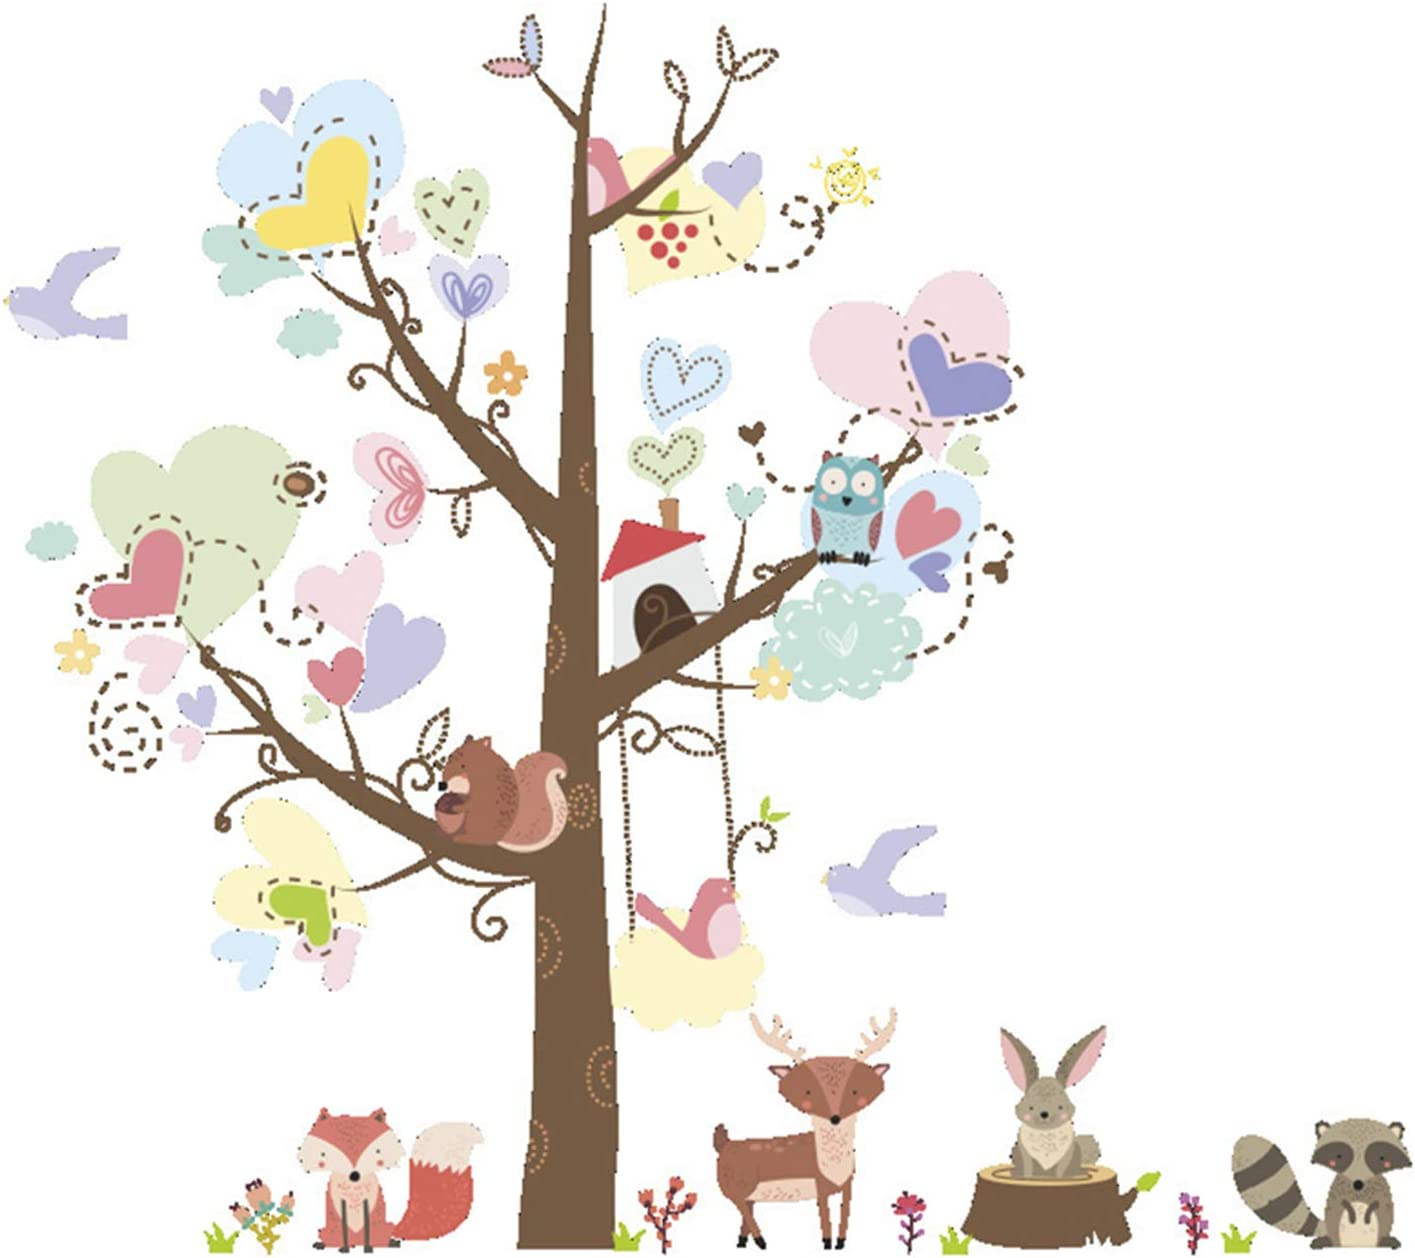 Fymural Nursery-Decor Tree Wall Stickers - Animals Fox Deer Raccoon Rabbit Wall Decals for Toddler Kids Girls Room Baby Bedroom Decorations DIY Removable Mural